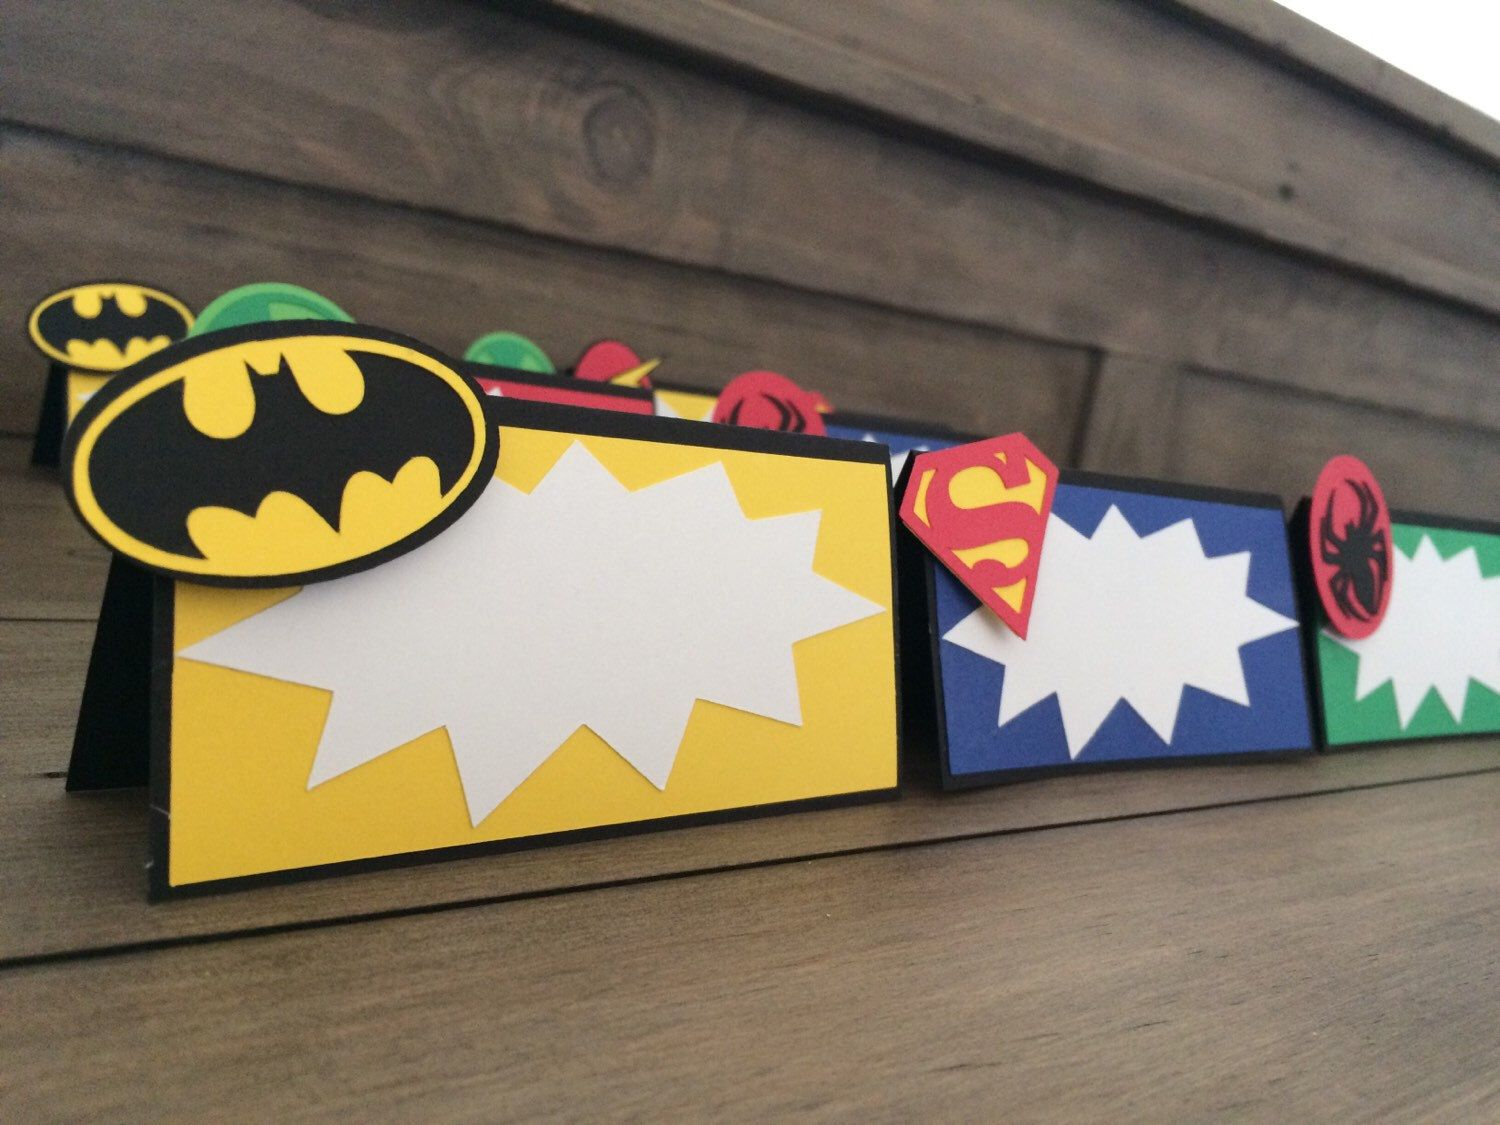 Super Hero Tent Cards*Place Cards*Marvel* Batman* Bachelor Party* Superhero & Super Hero Tent Cards*Place Cards*Marvel* Batman* Bachelor Party ...